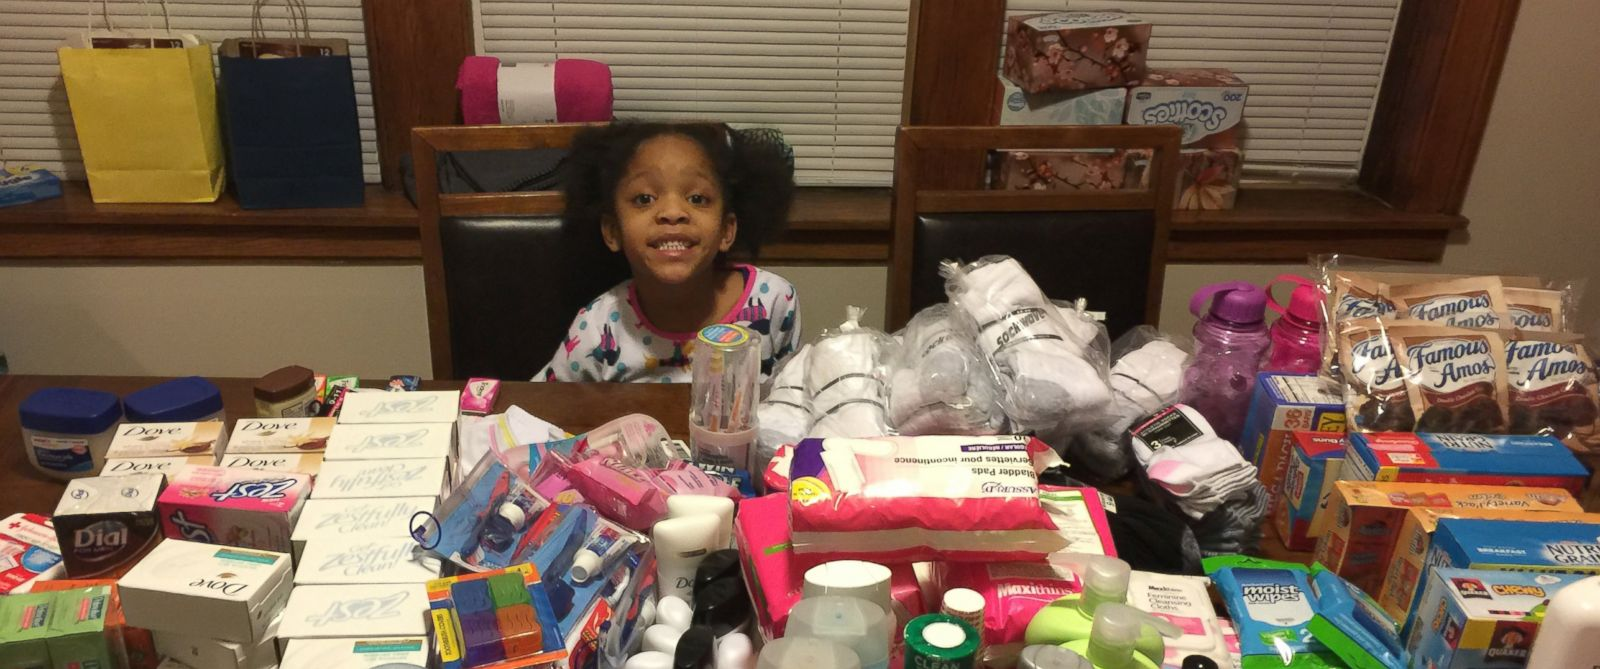 child helps homeless for birthday